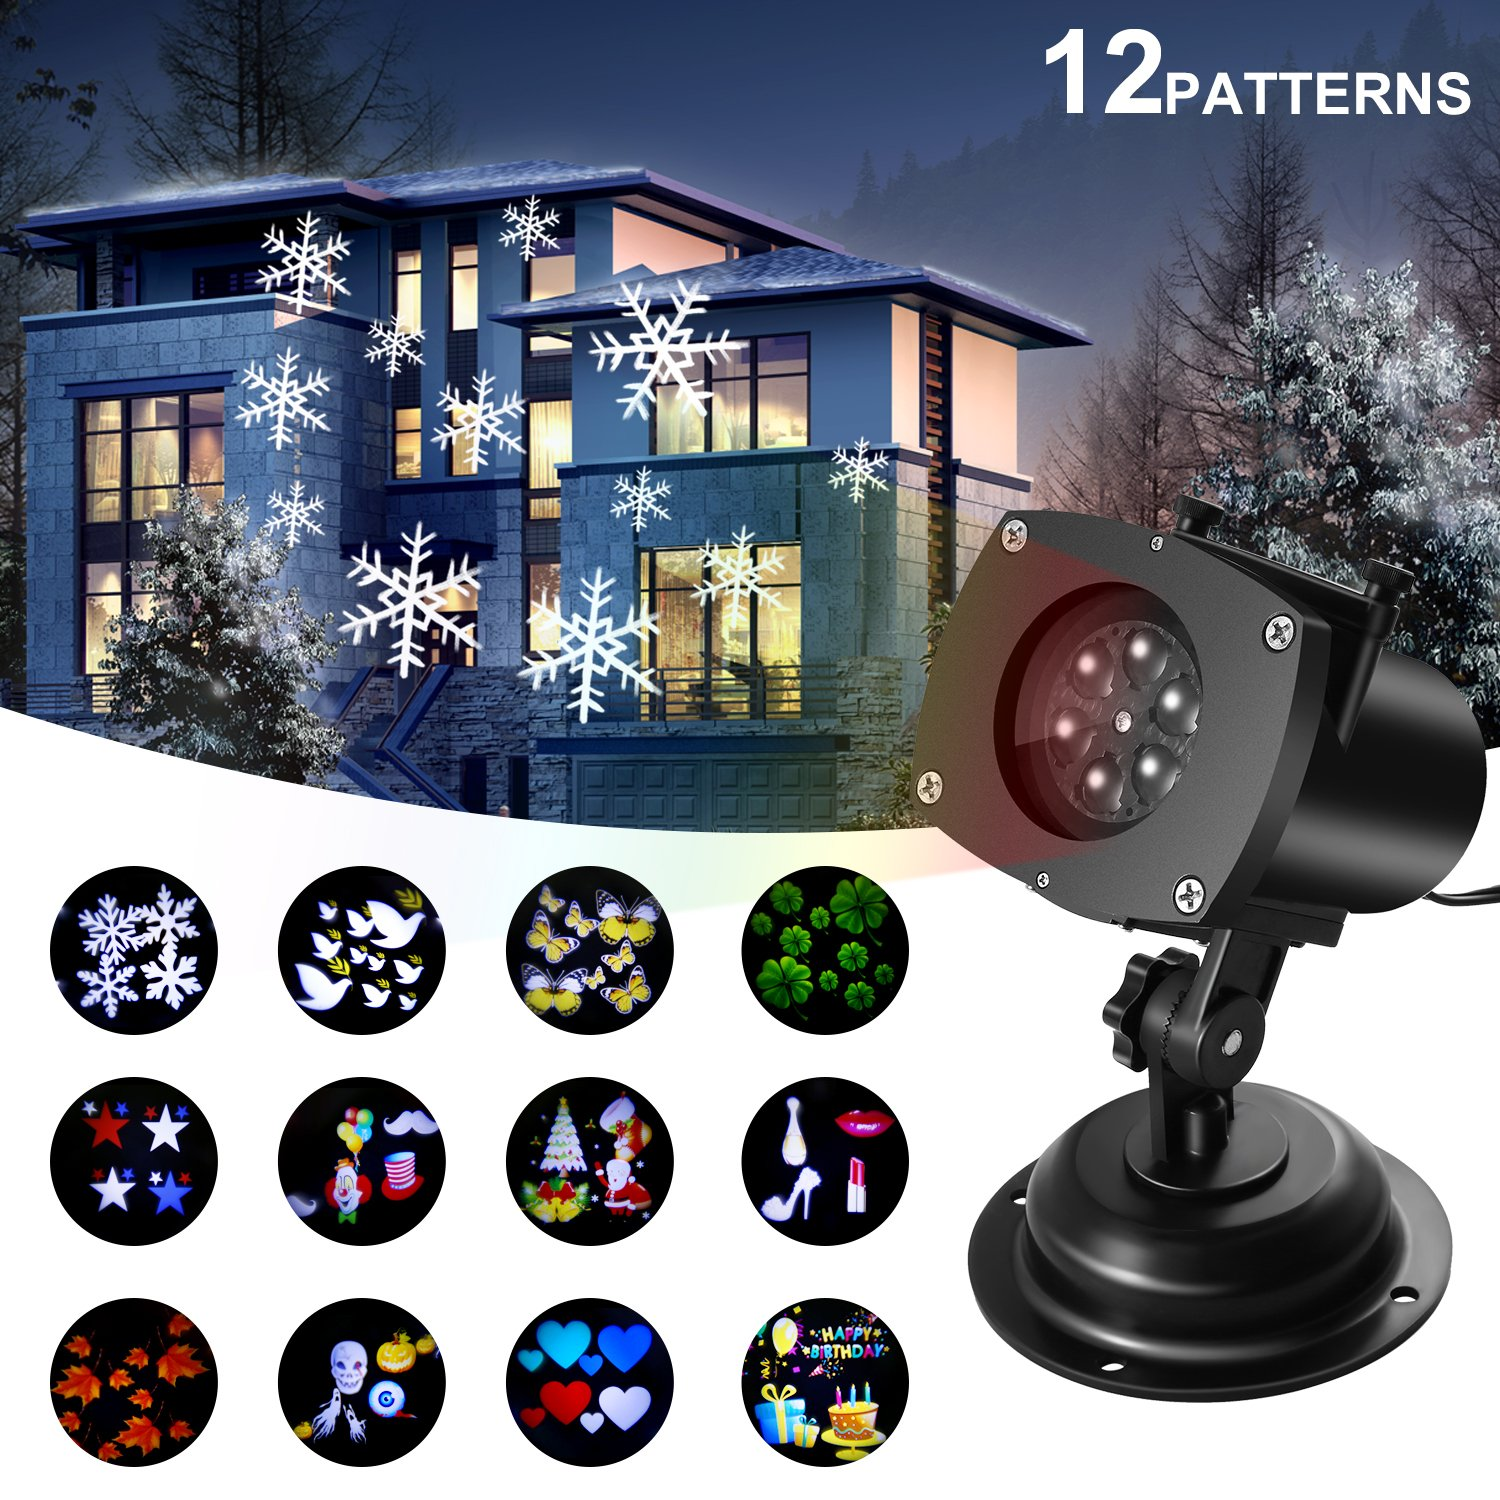 Christmas Projector Lights Outdoor Switchable Pattern Displays Projector Show Waterproof Rotating Projection Light for Decoration Lighting on Christmas Holiday Party Home